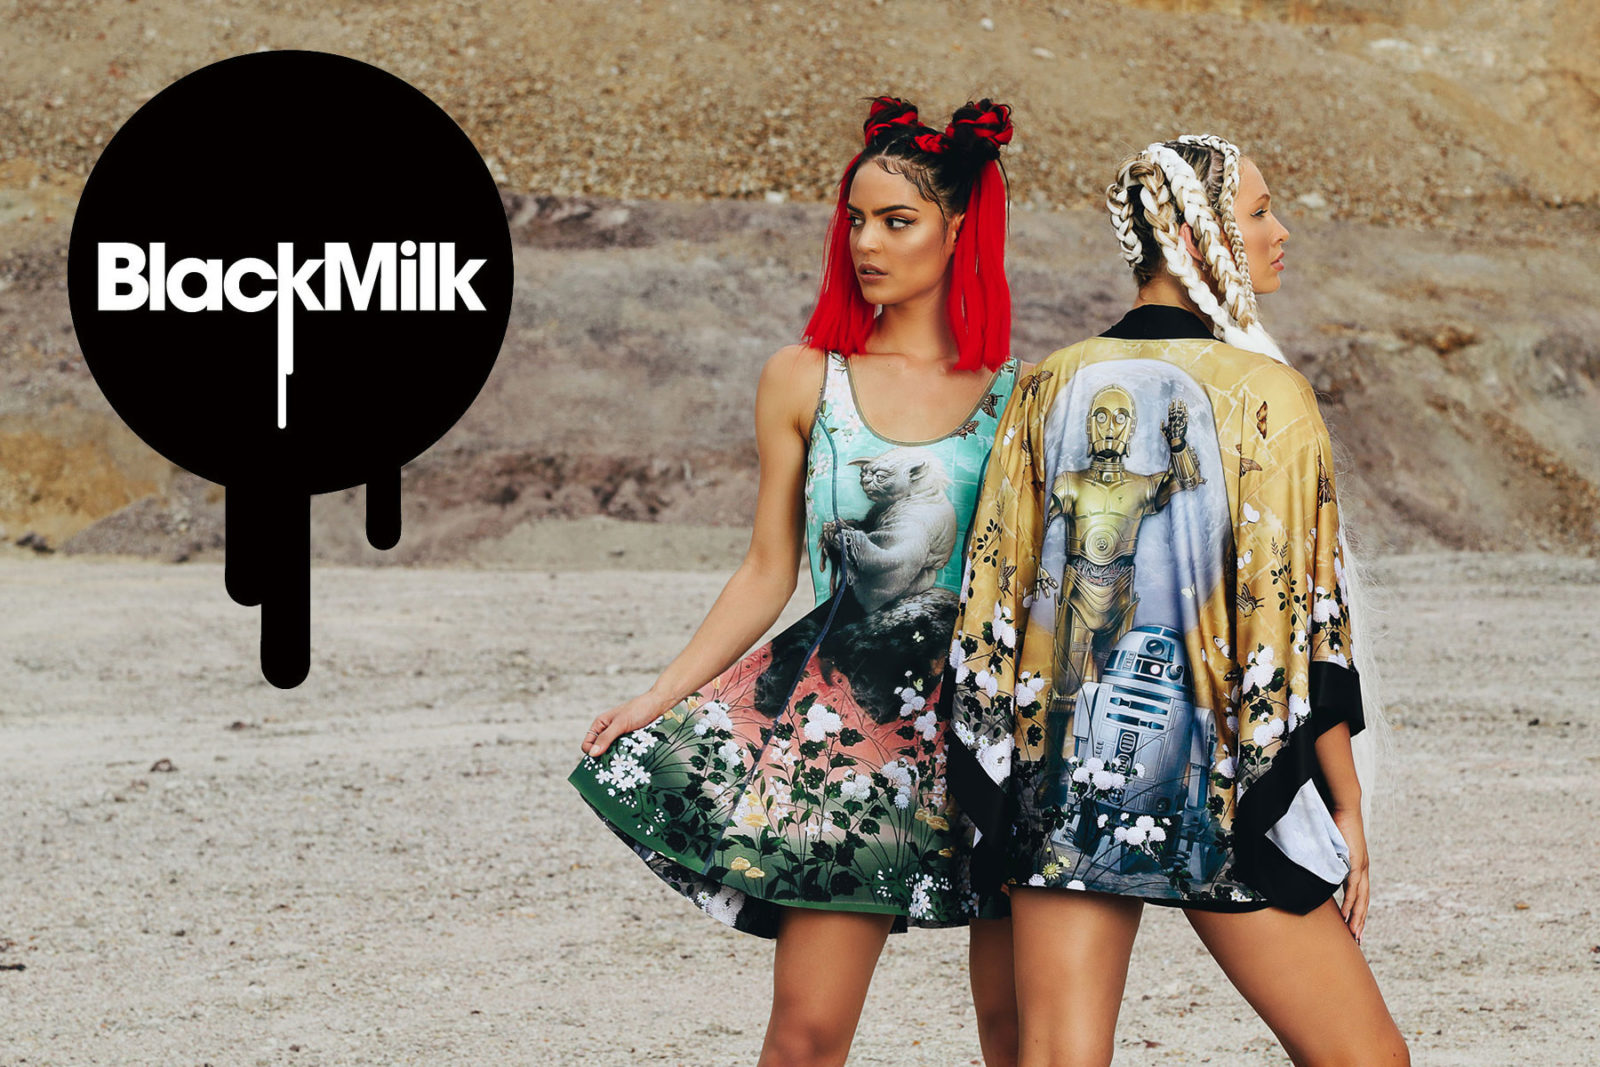 BlackMilk Star Wars 2019 Lookbook